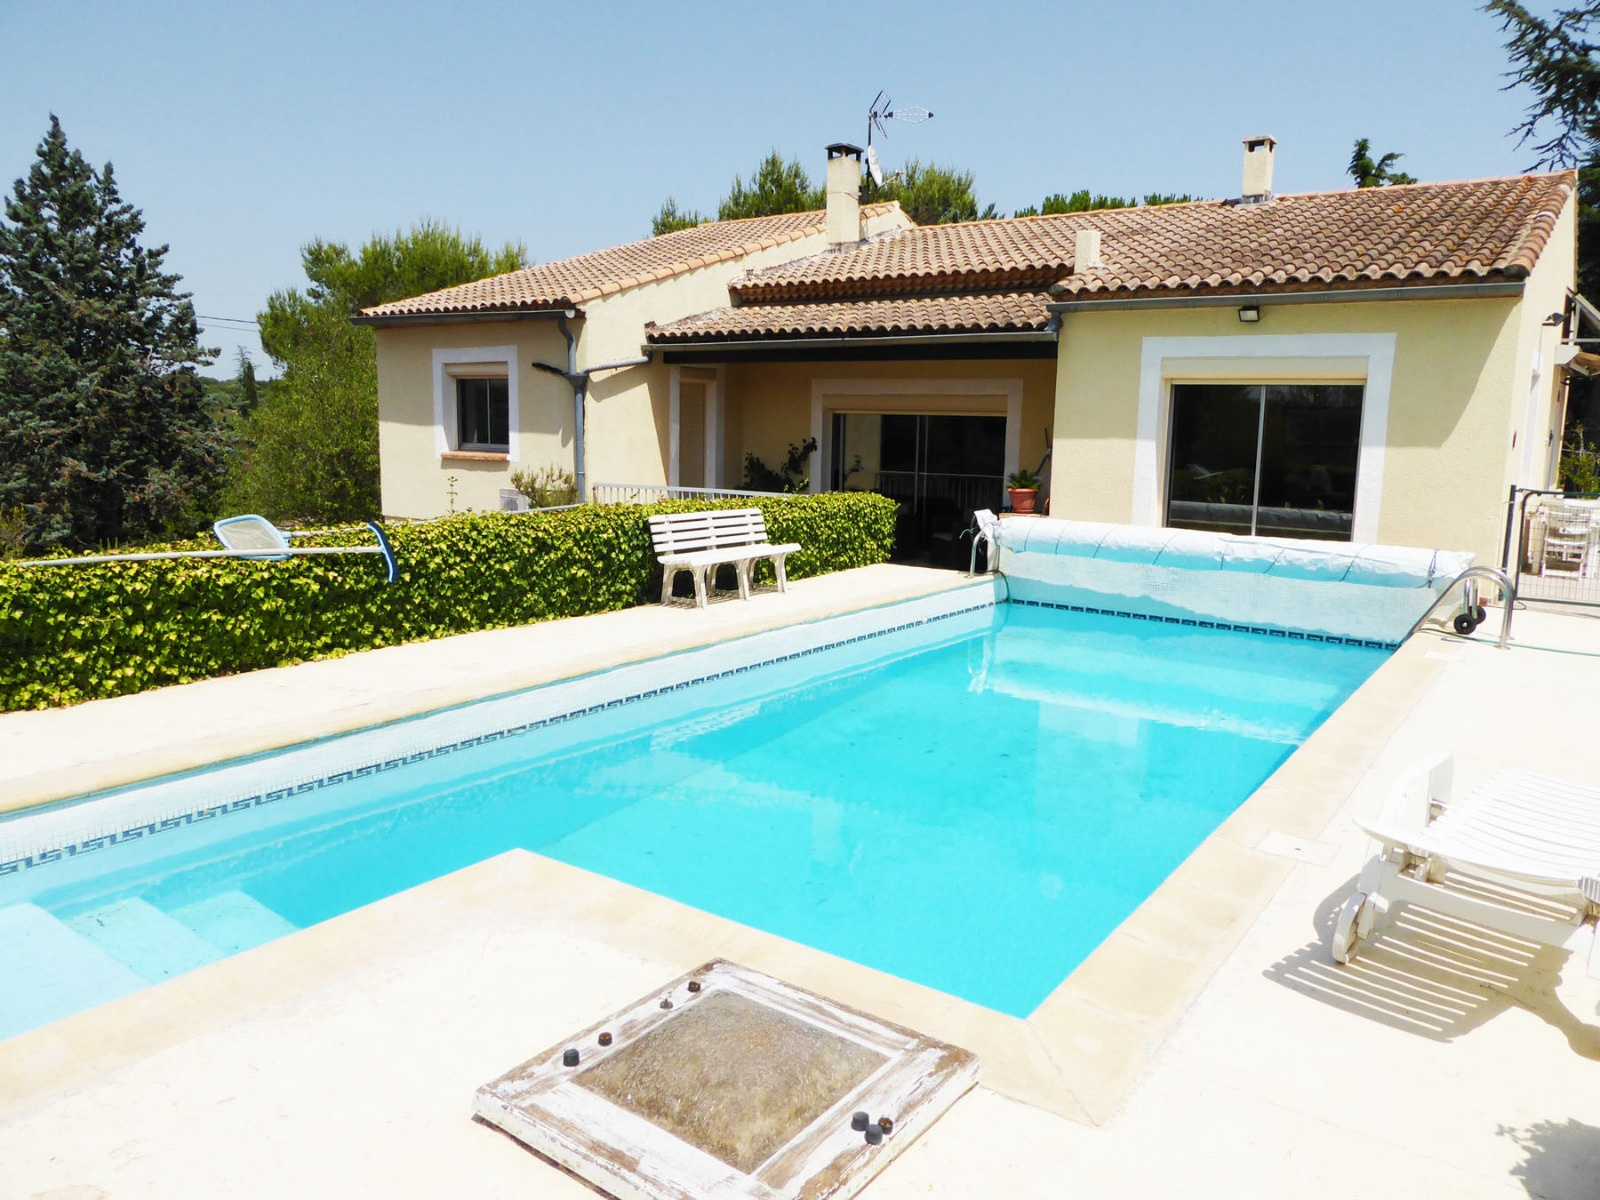 Vente ppartements villas et maisons sur n mes vergues for Piscine nimes